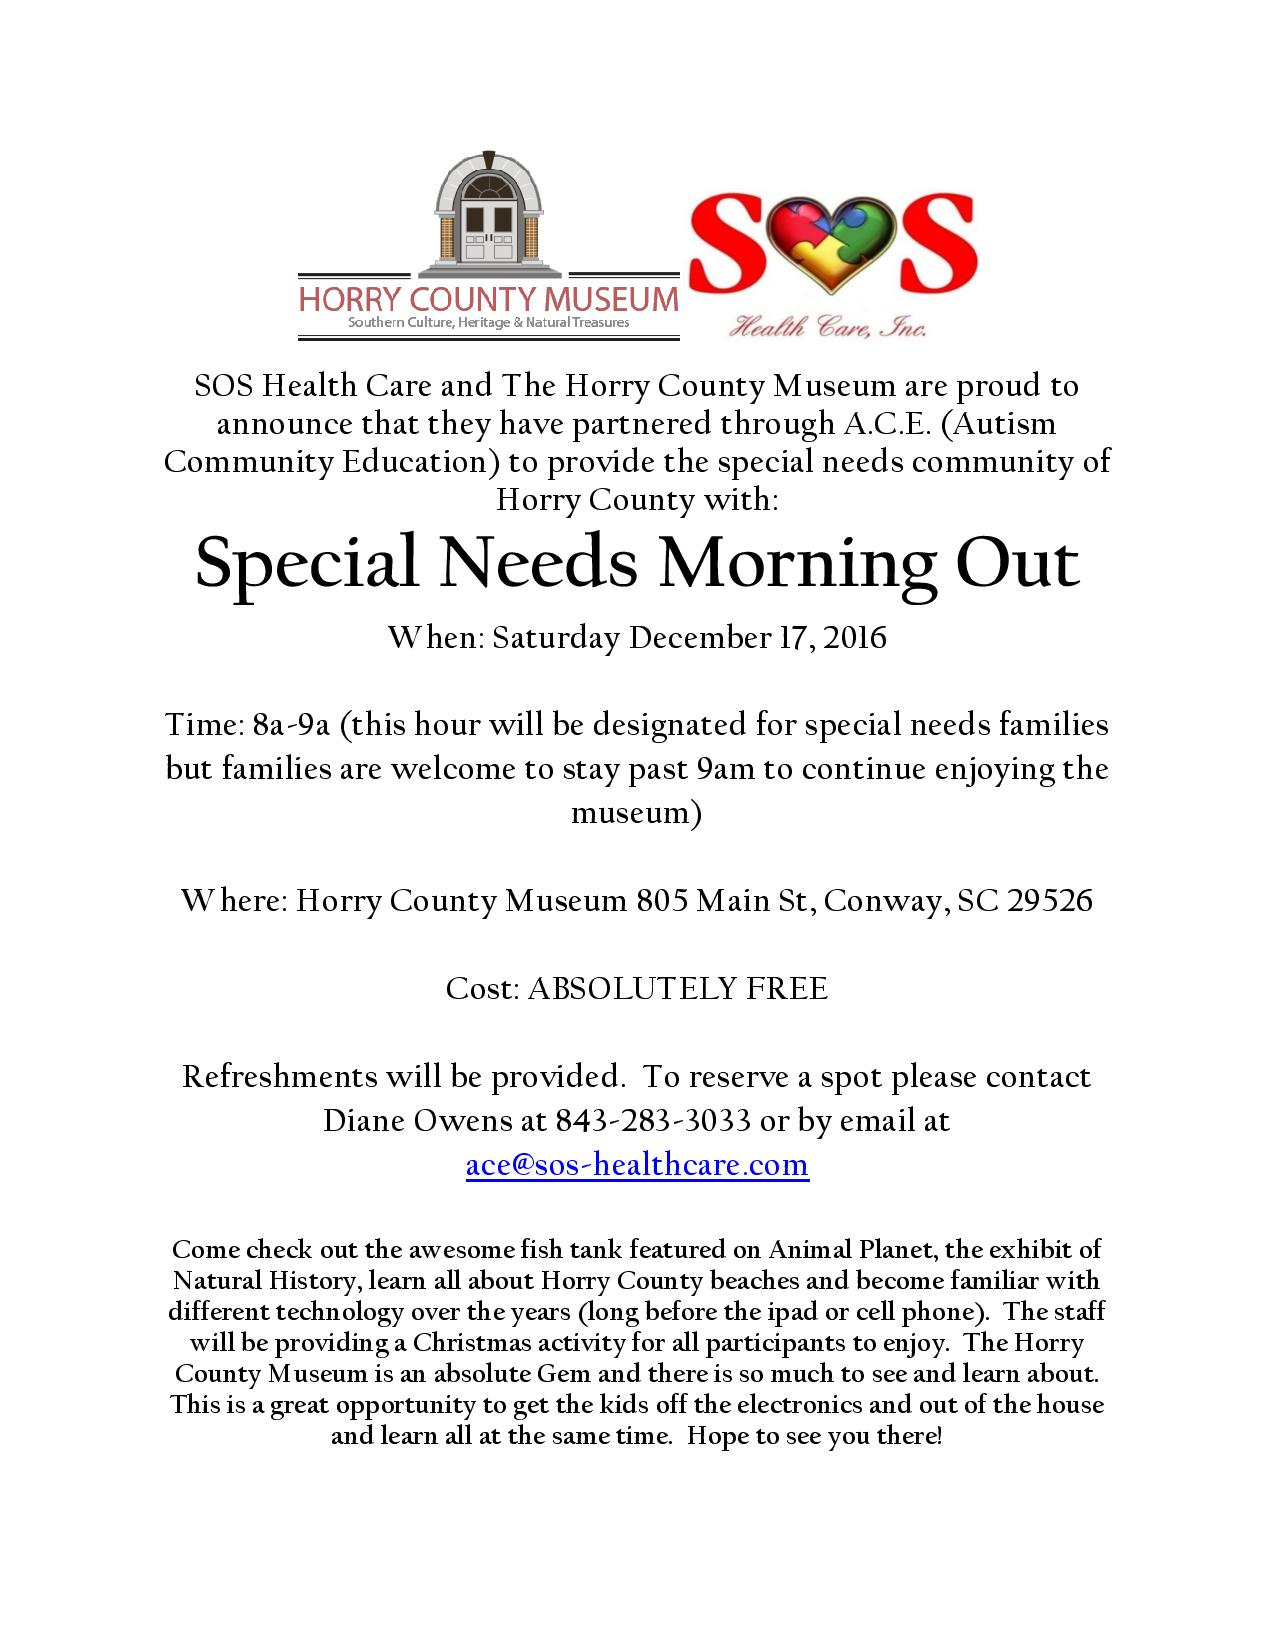 horry-county-museum-special-needs-morning-out-flyer-page-001